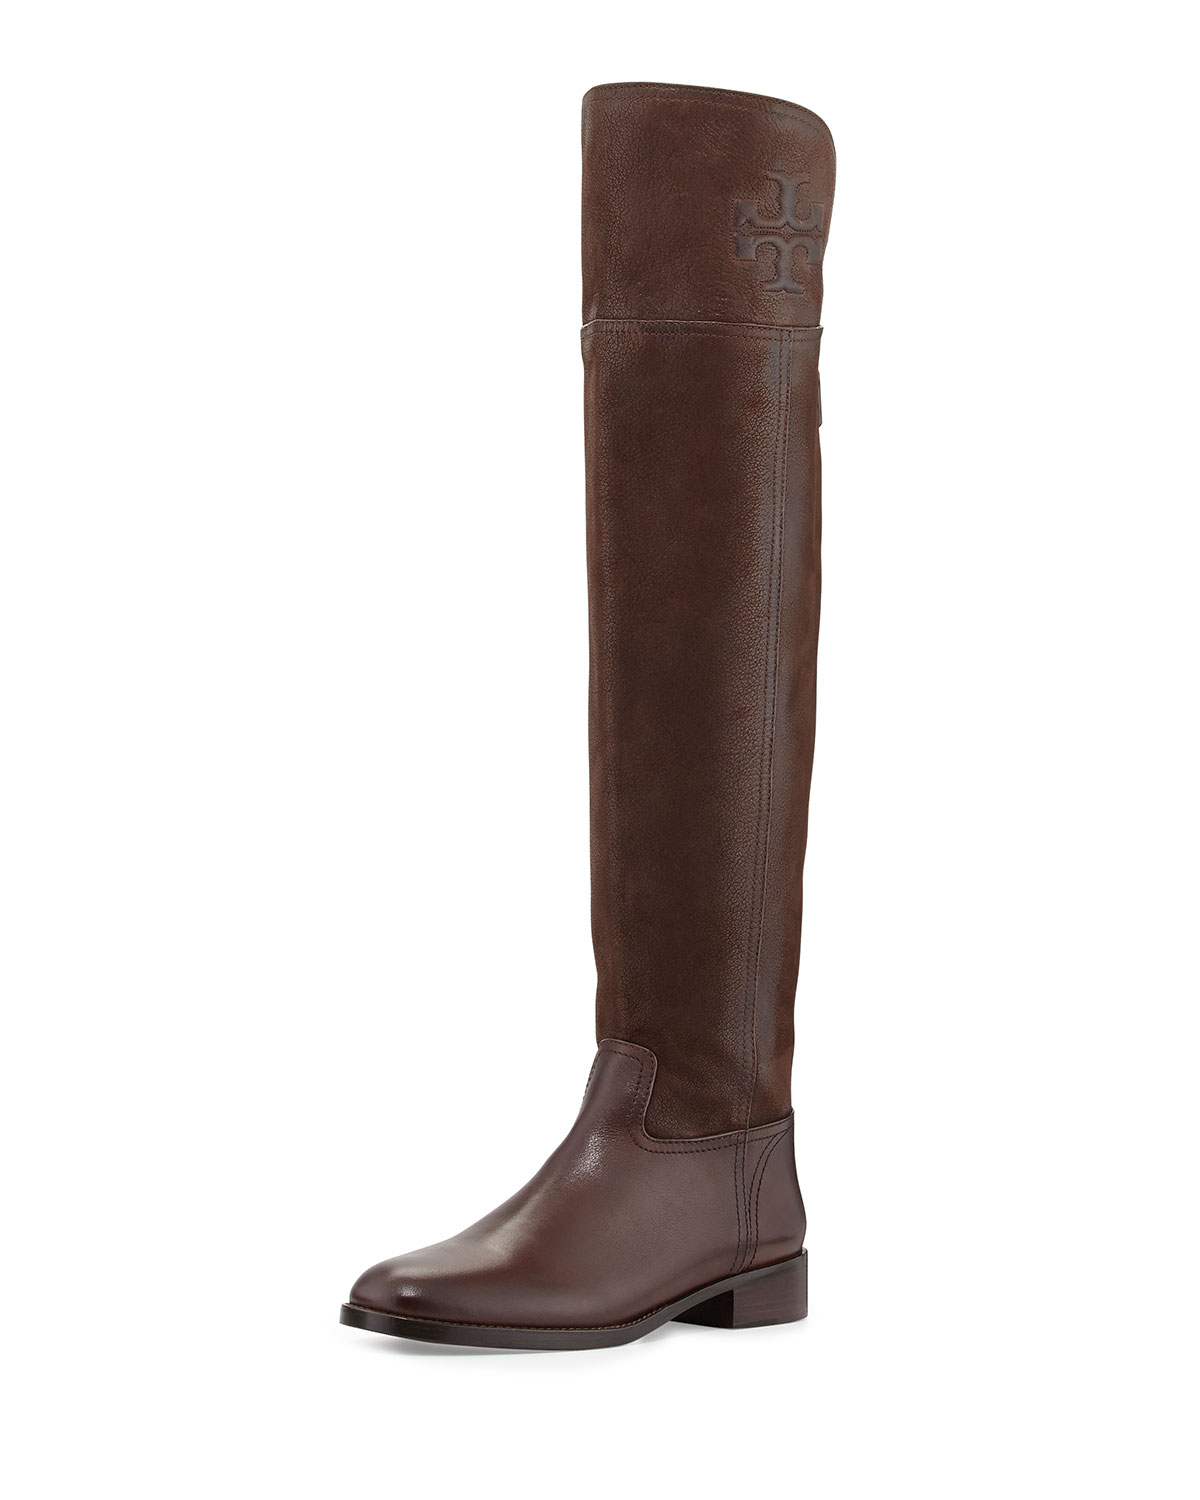 ddc8c7f99 Lyst - Tory Burch Simone Over-The-Knee Logo Boot in Brown